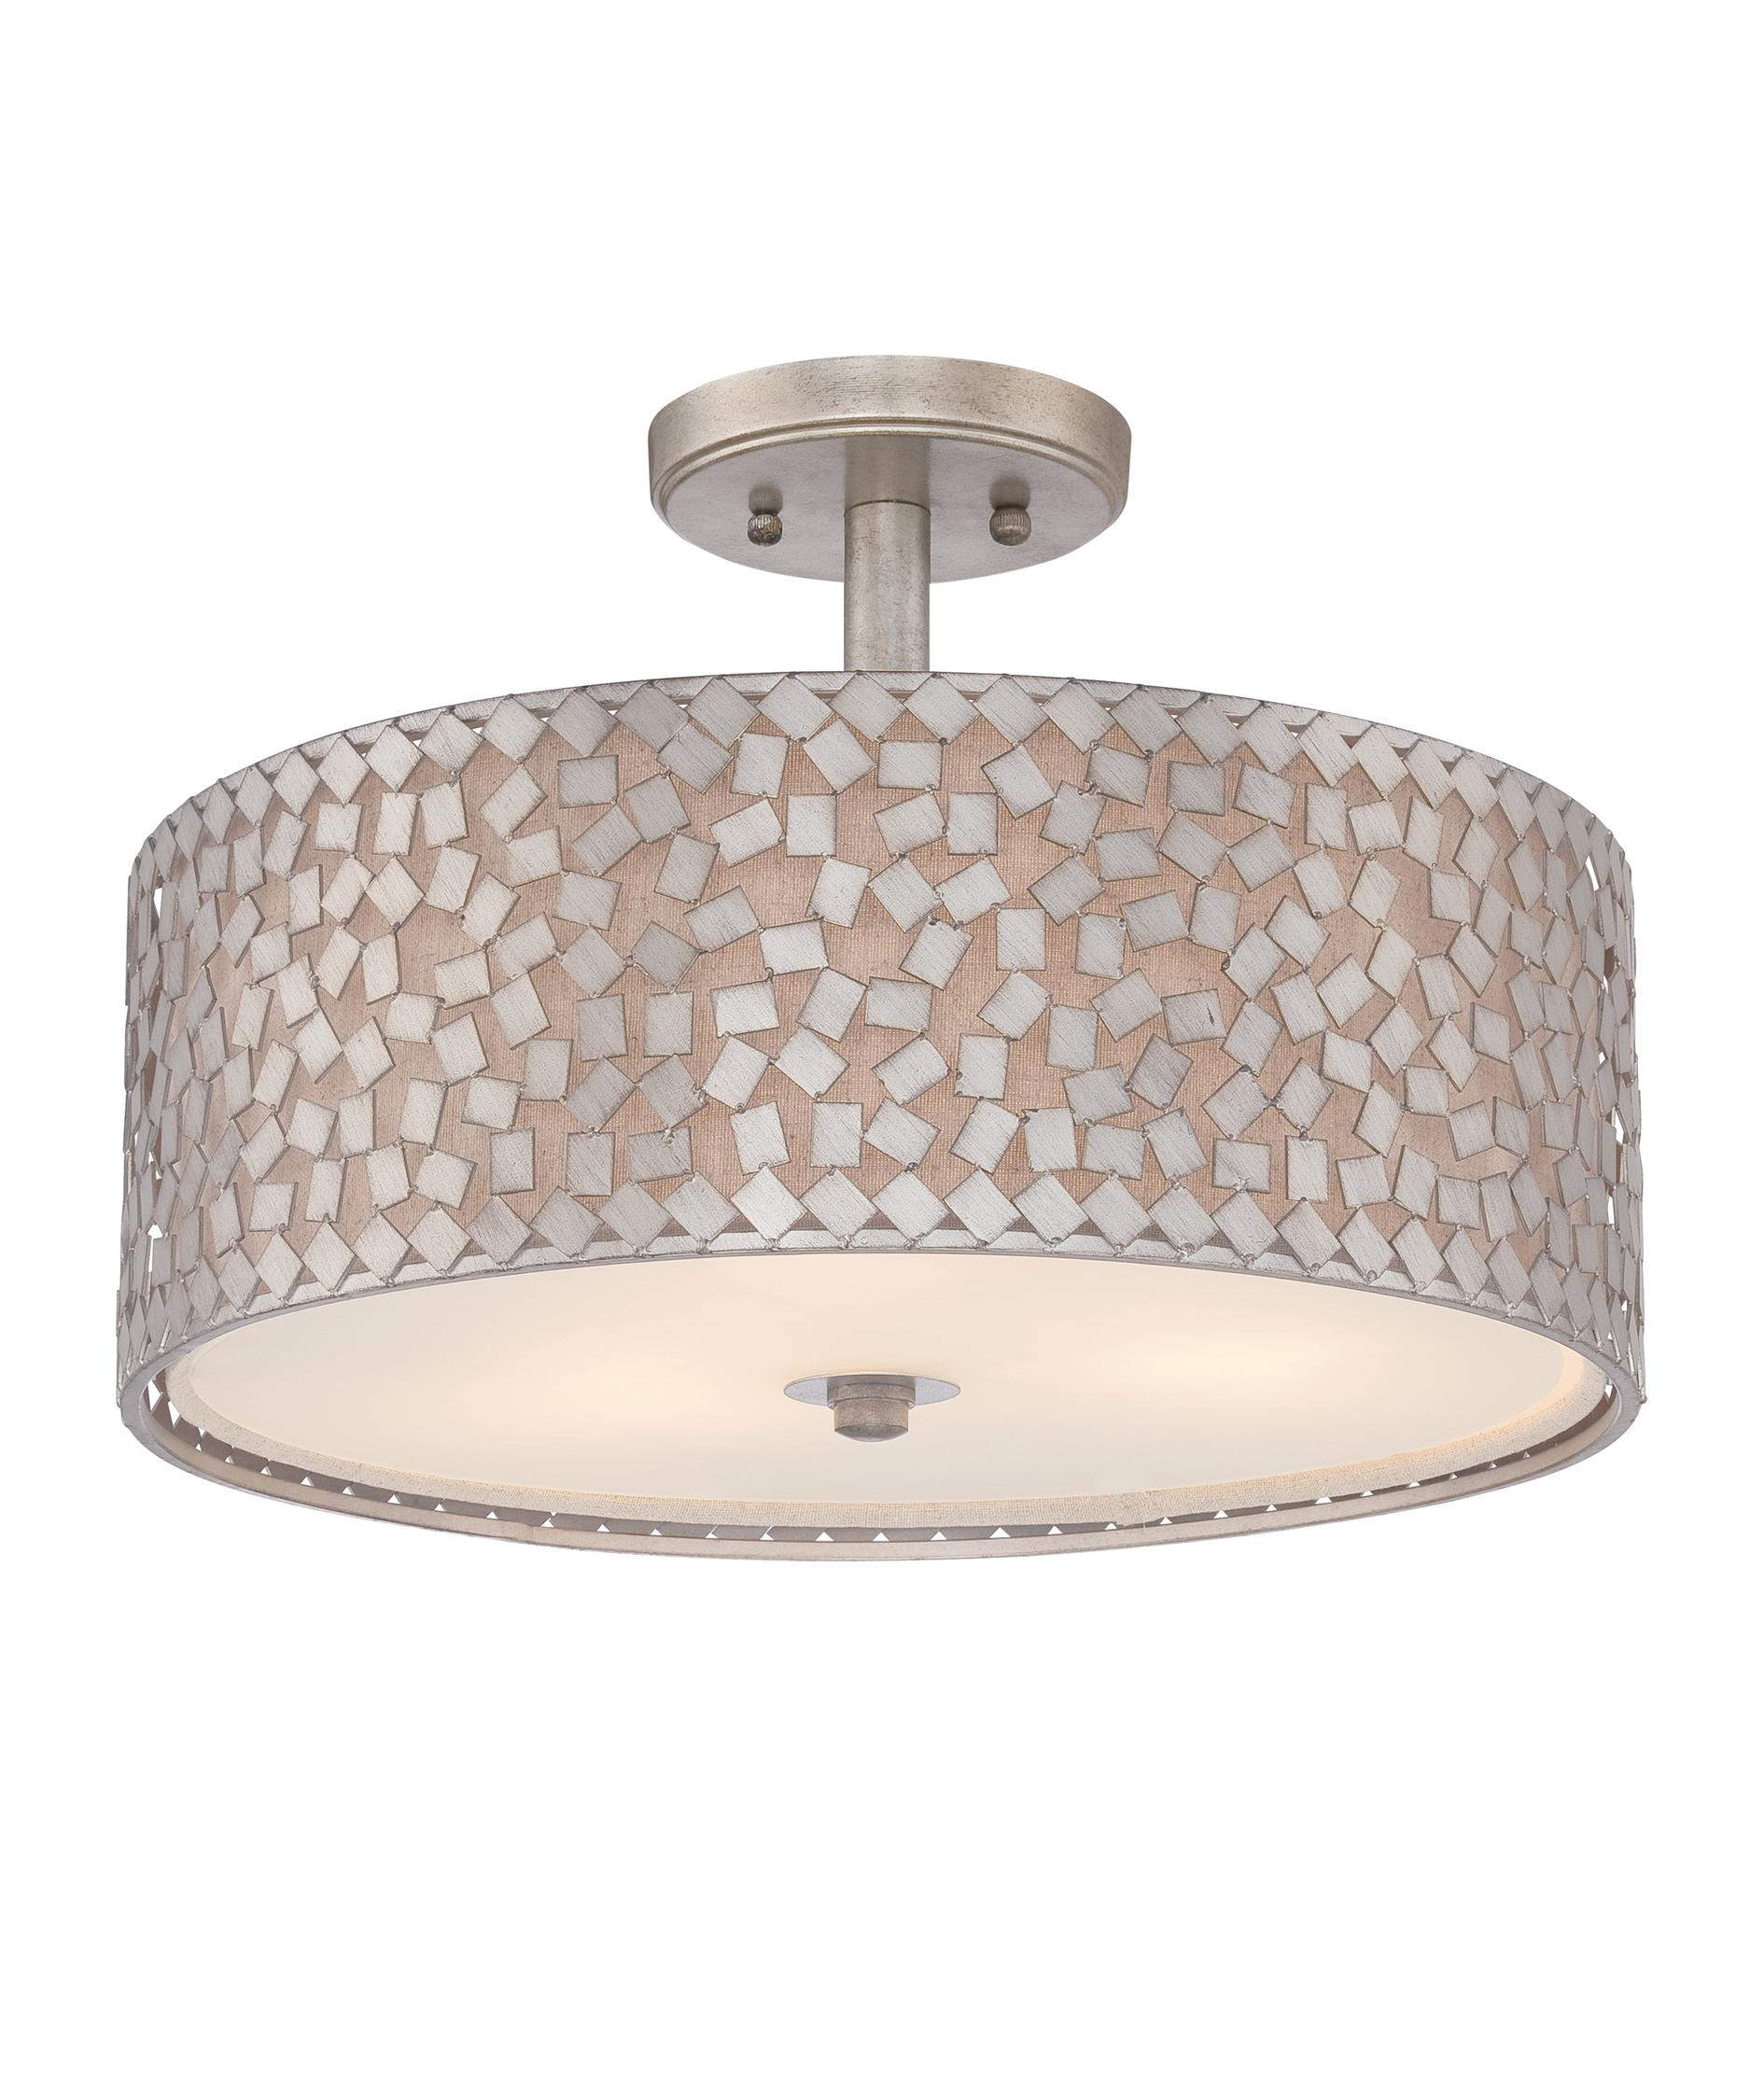 quoizel ckcf1717 confetti 17 inch wide semi flush mount capitol lighting - Semi Flush Mount Lighting